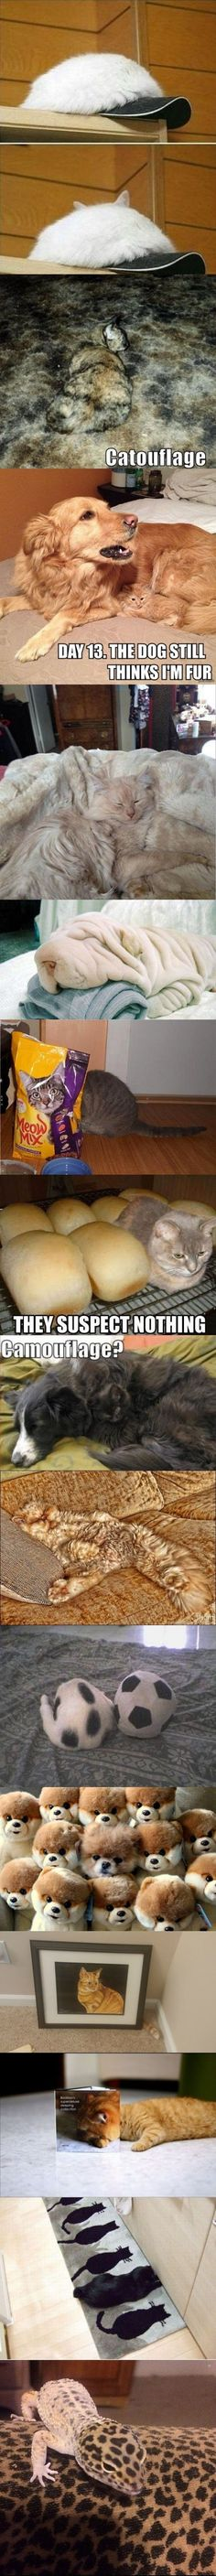 They suspect nothing!! - Imgur